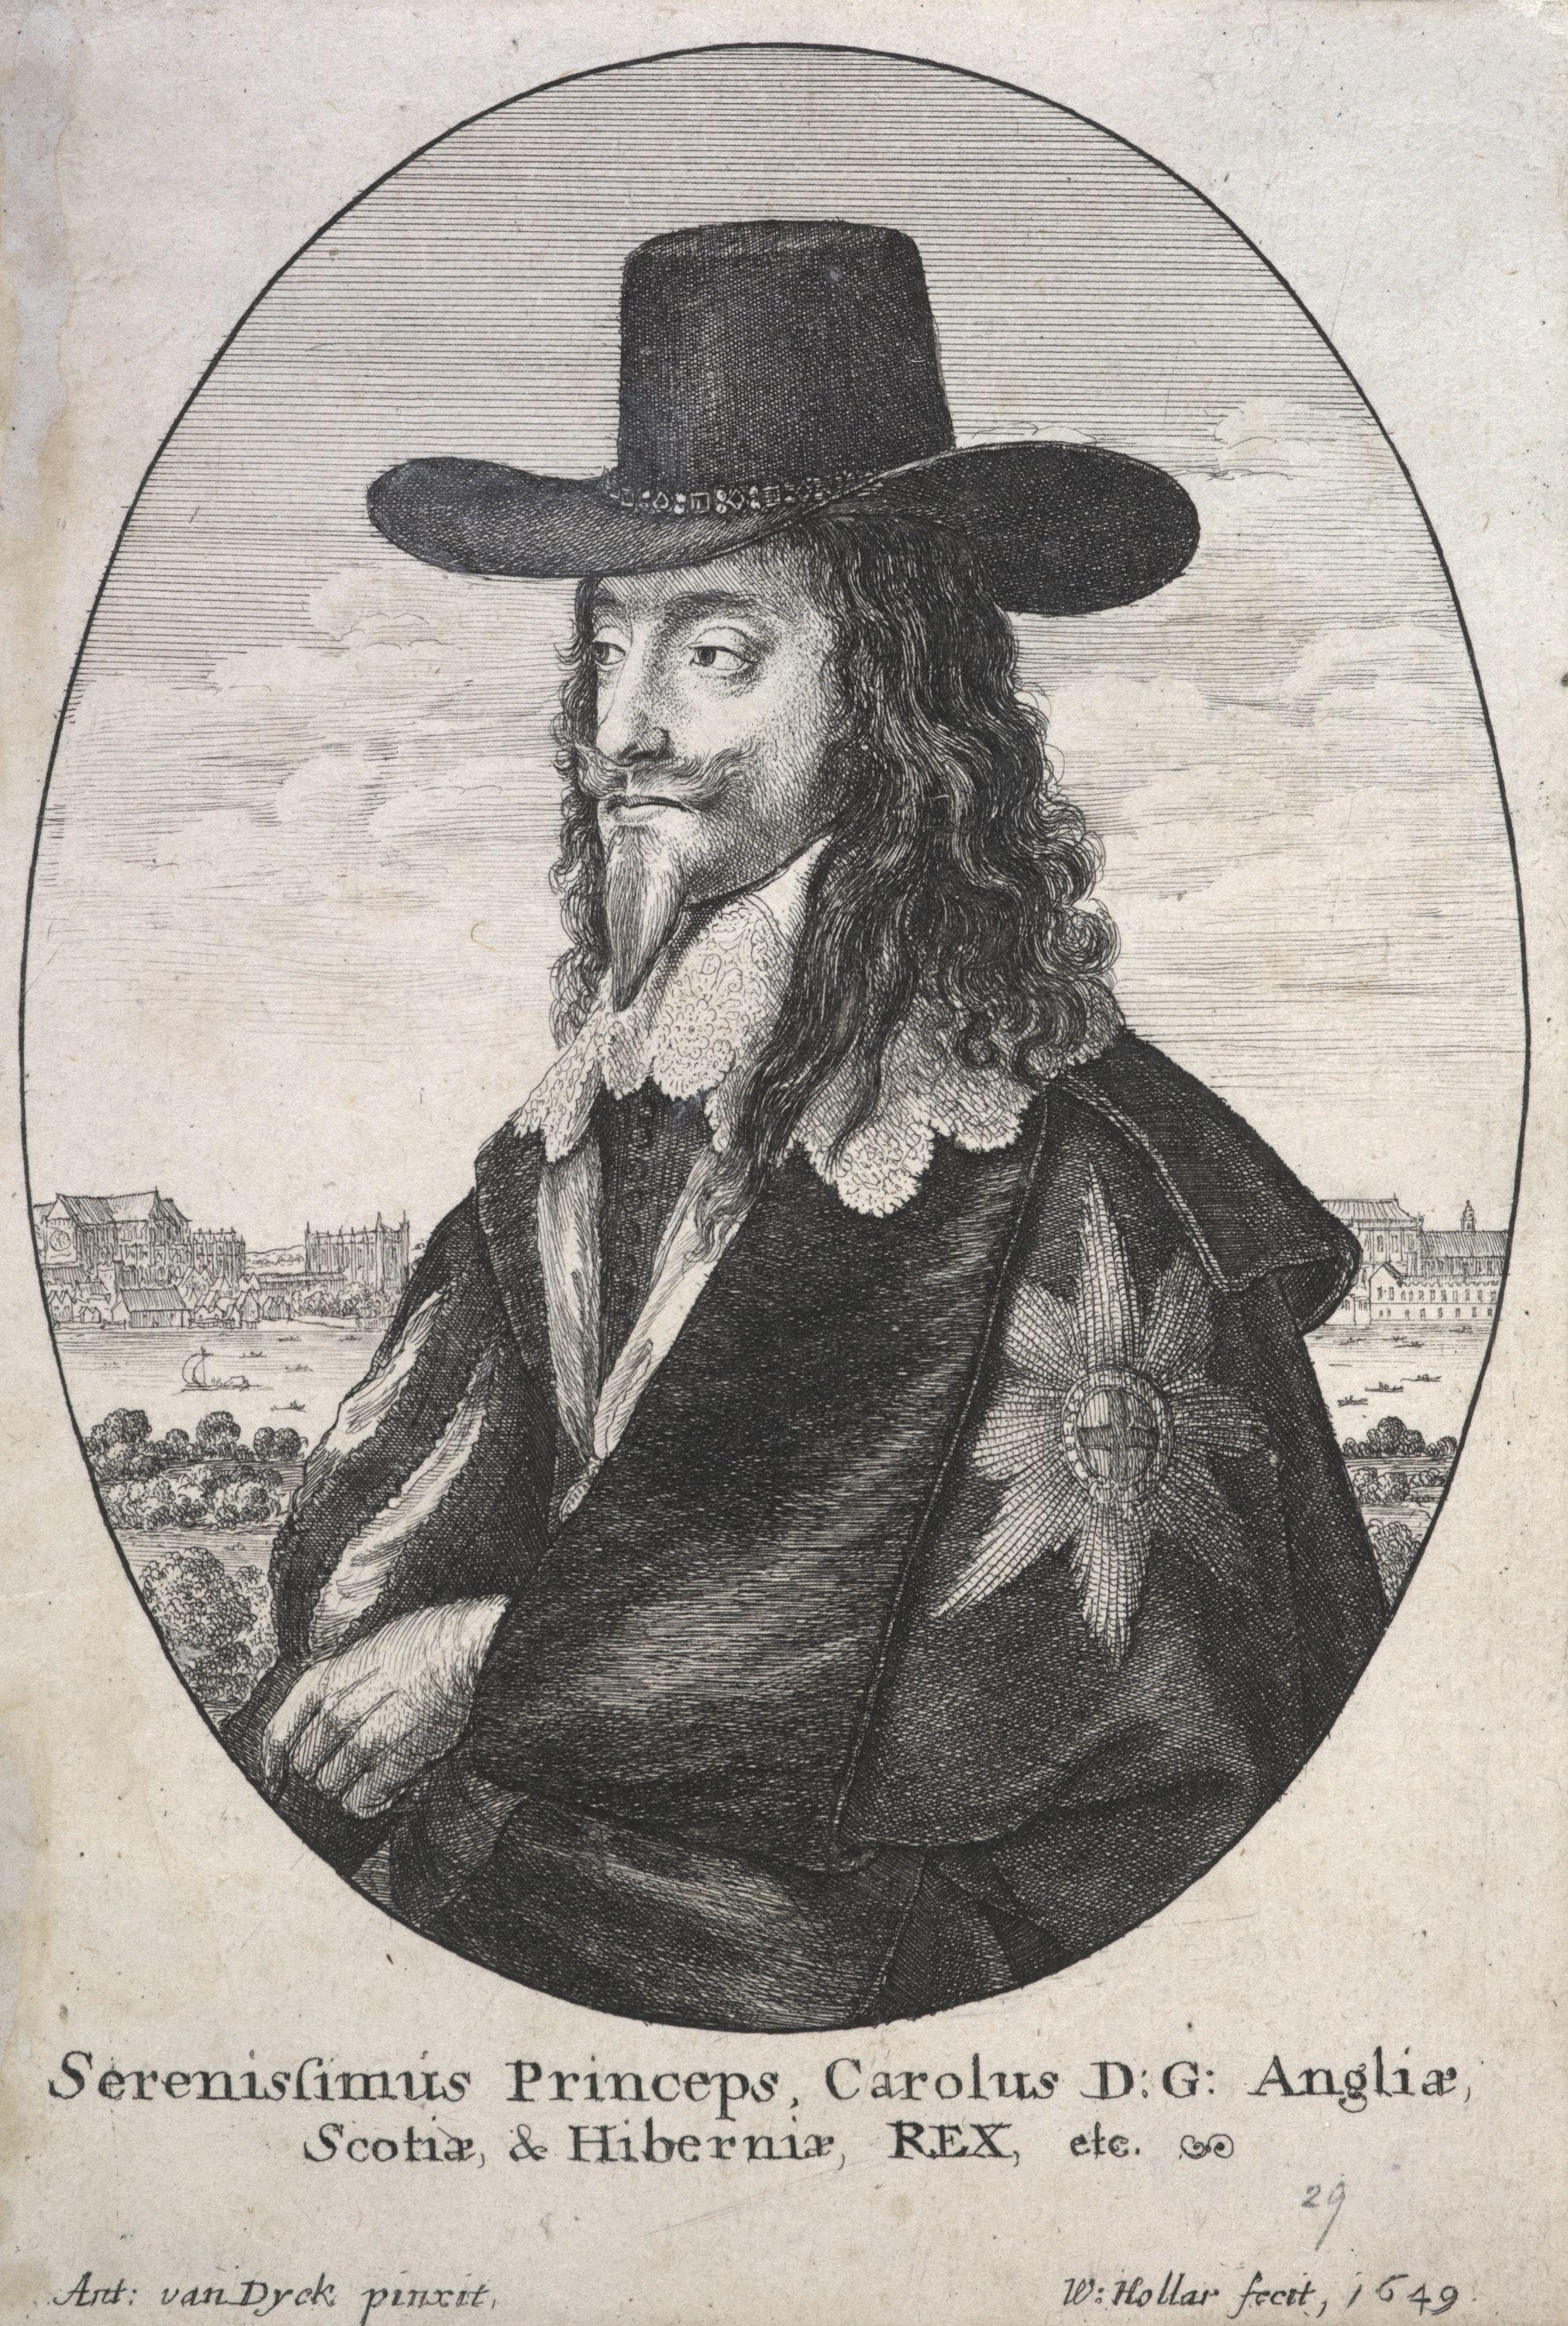 Etching of Charles I in a black cape and hat, he has a pointy beard